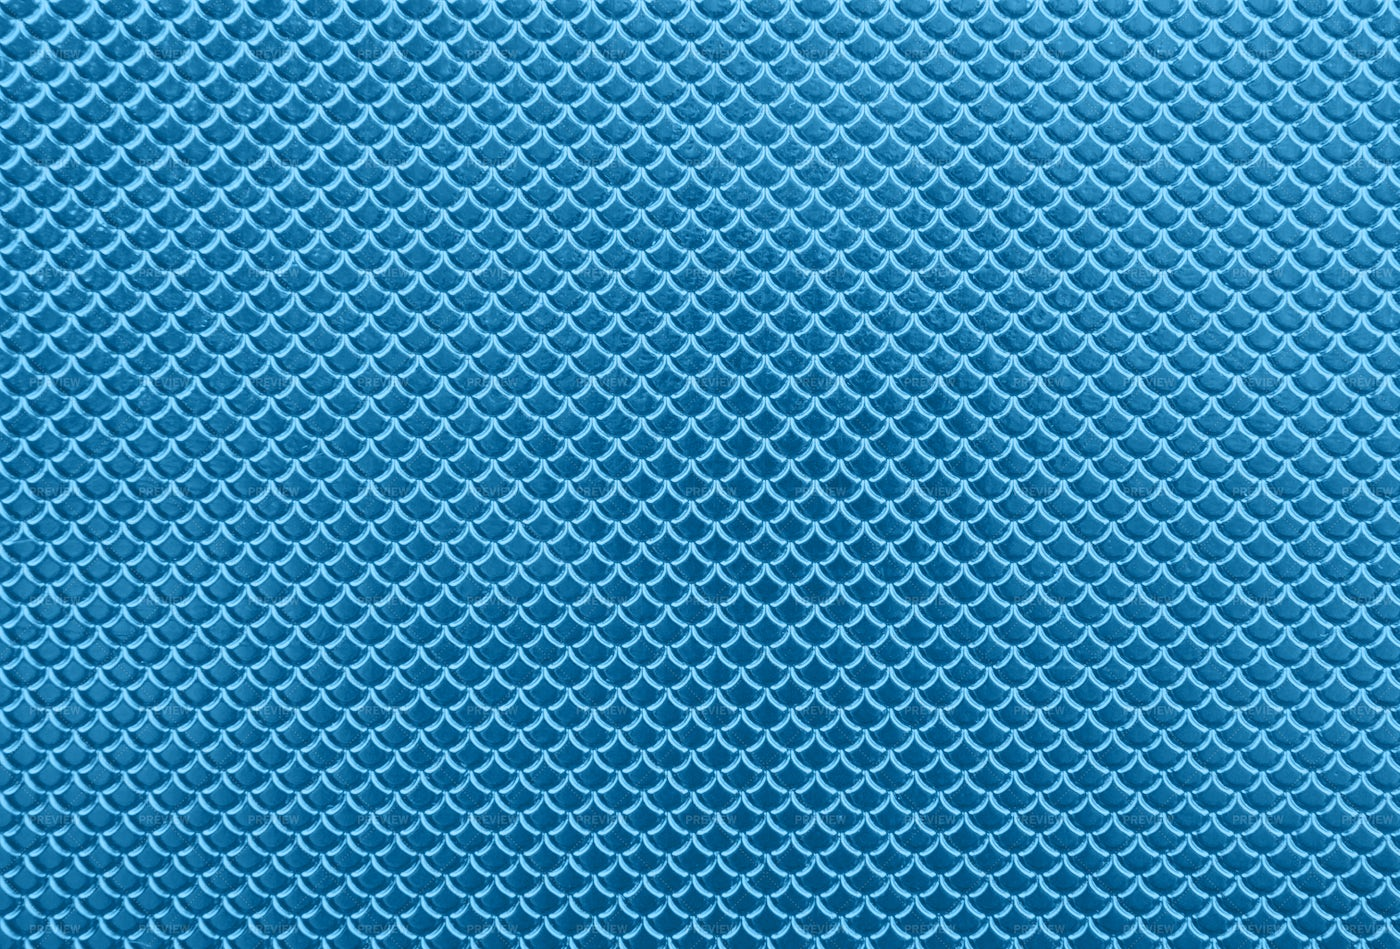 Blue Scaled Material: Stock Photos